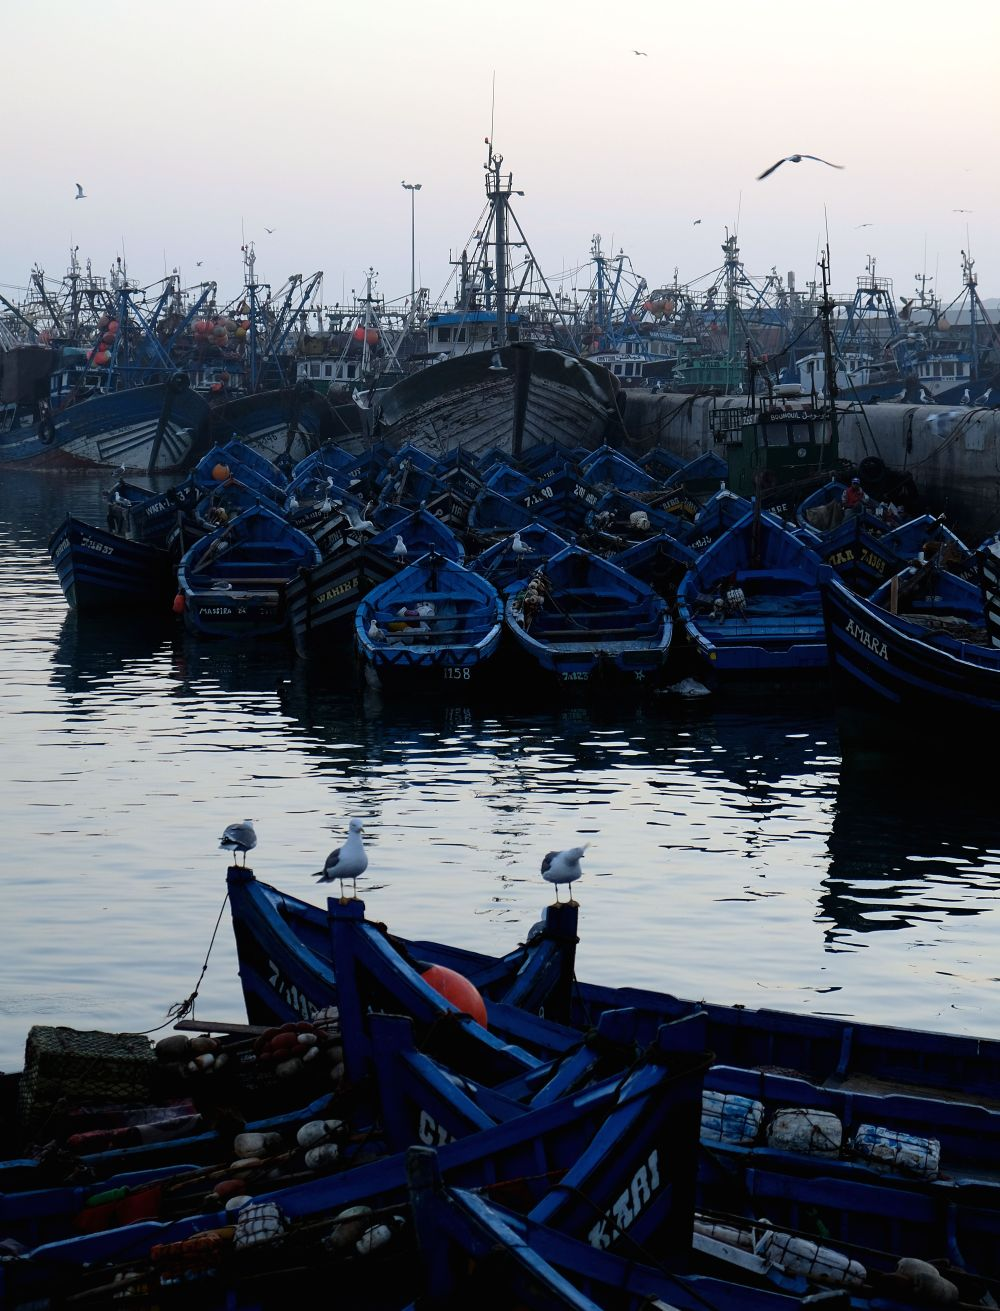 Sunset. Take a walk through Essaouira's fishing port